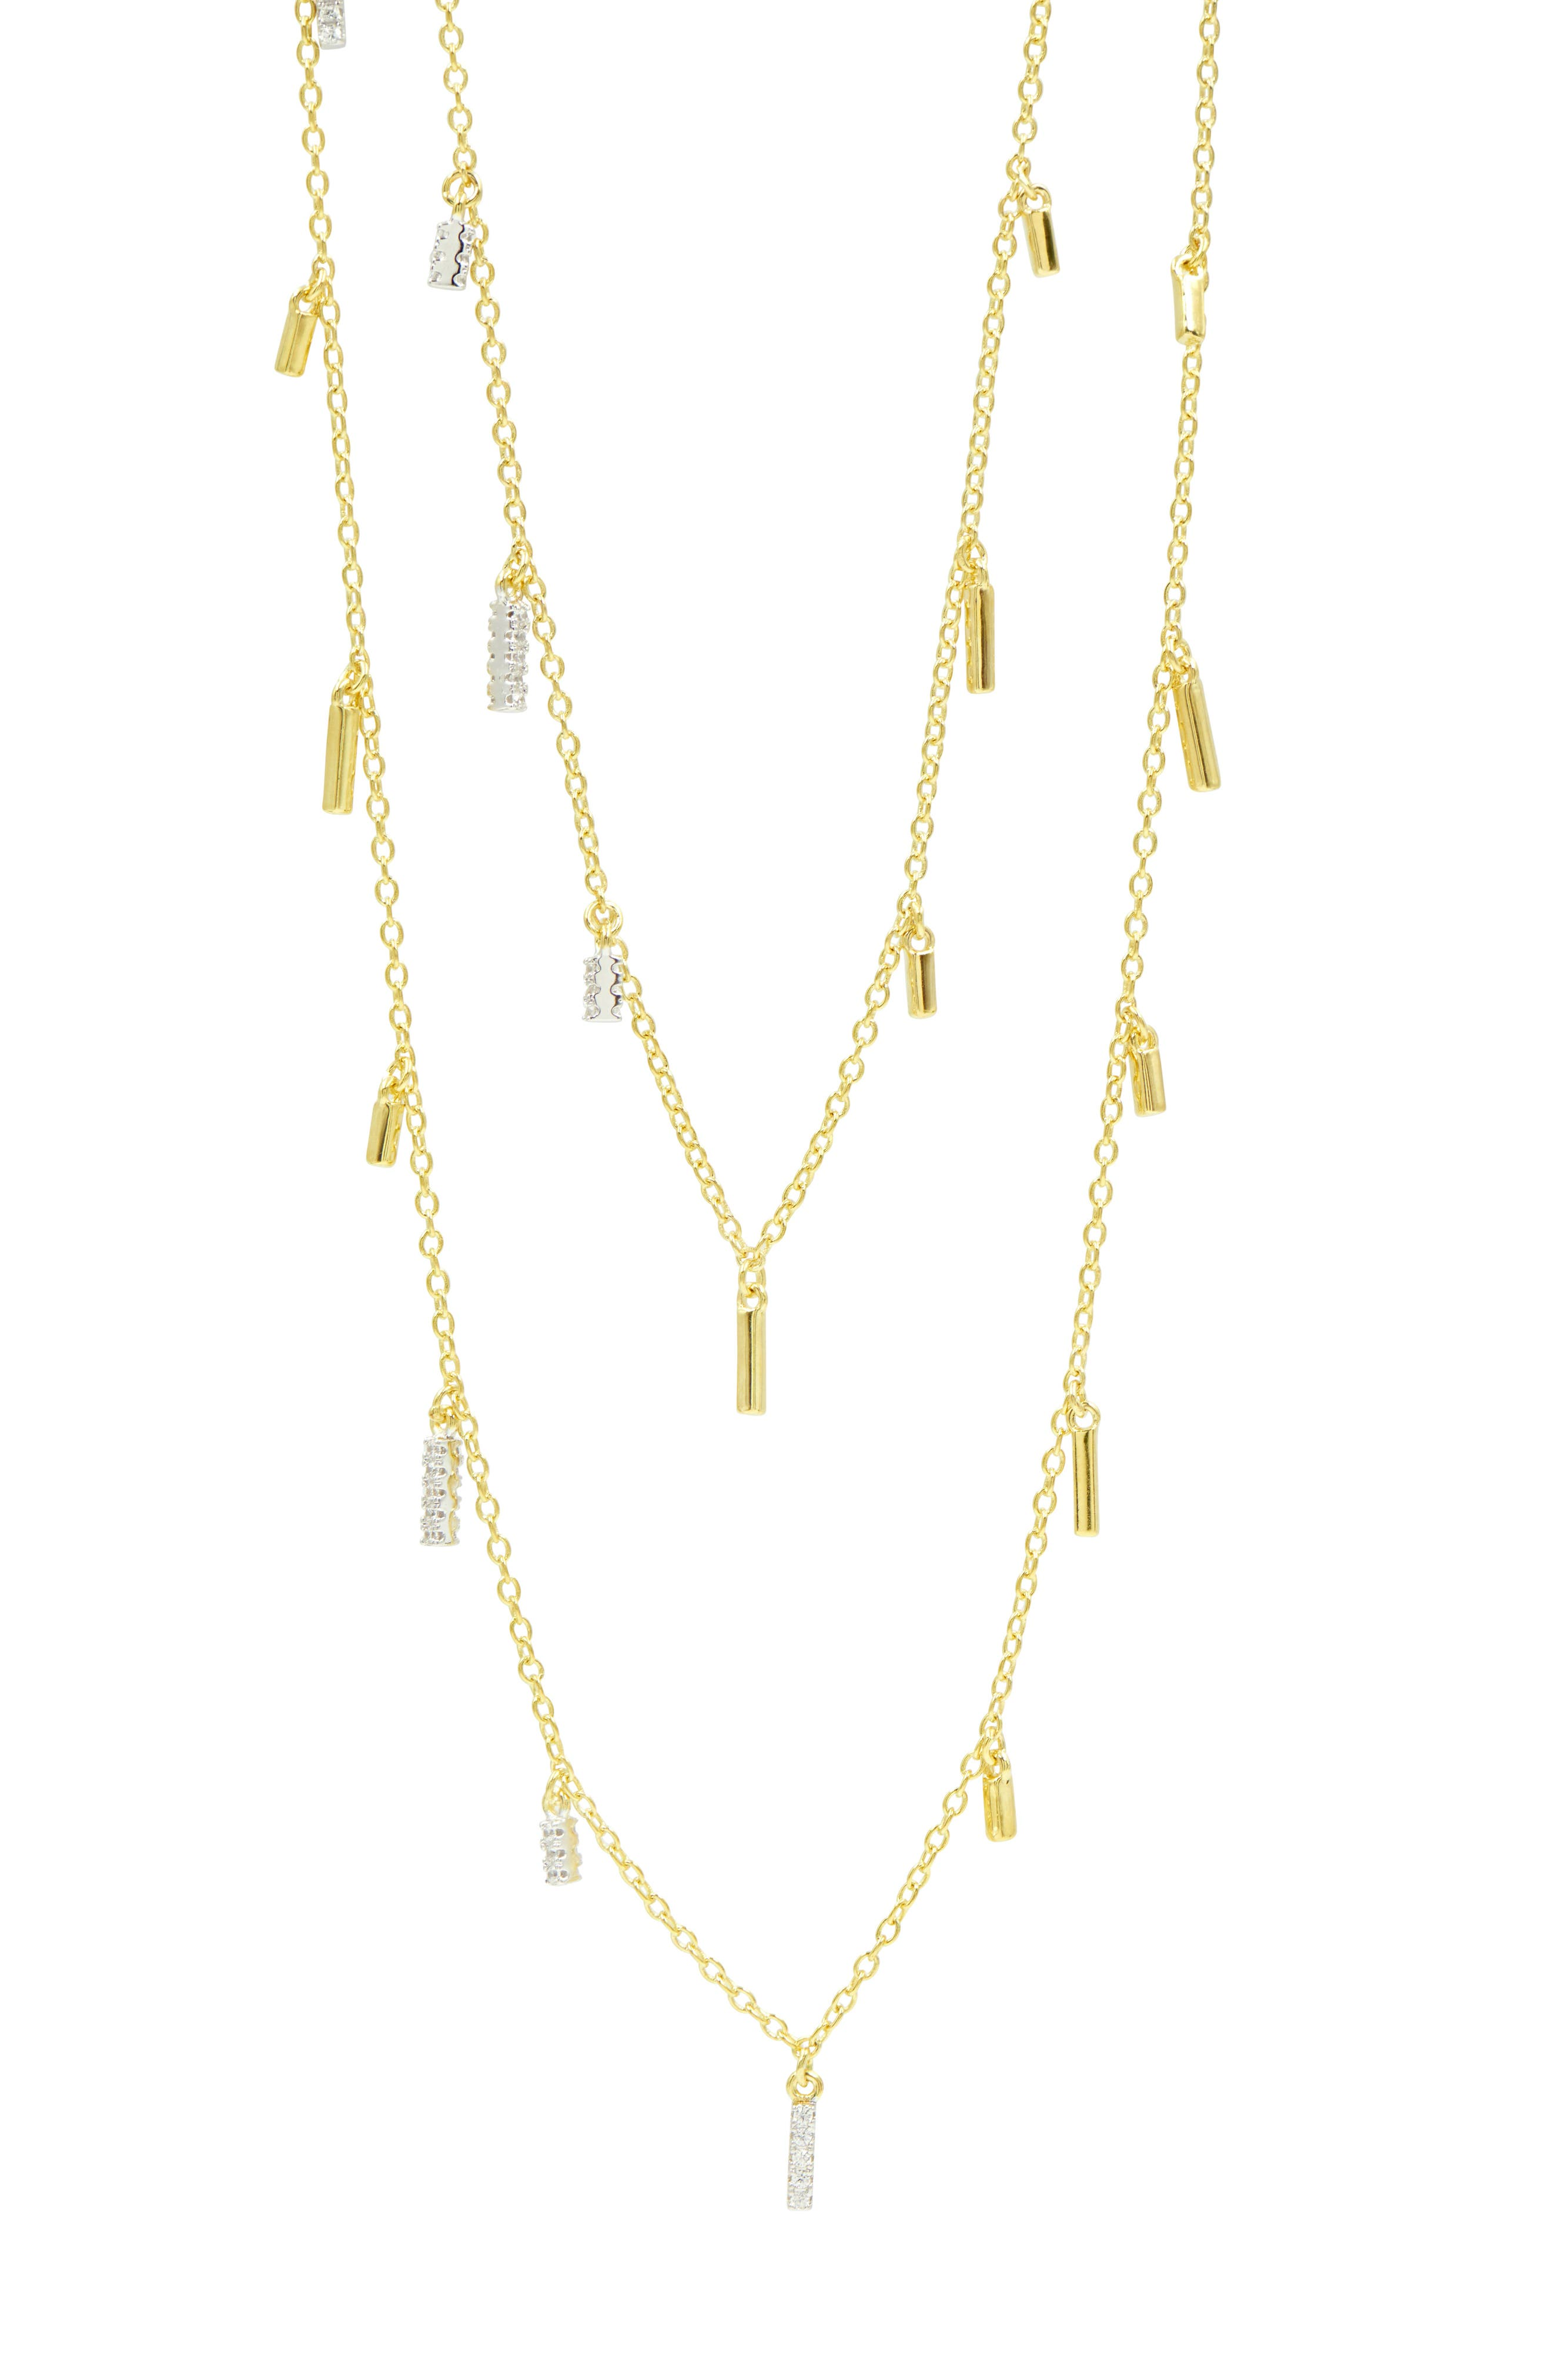 Radiance Droplet Cubic Zirconia Station Necklace,                             Alternate thumbnail 3, color,                             Silver/ Gold